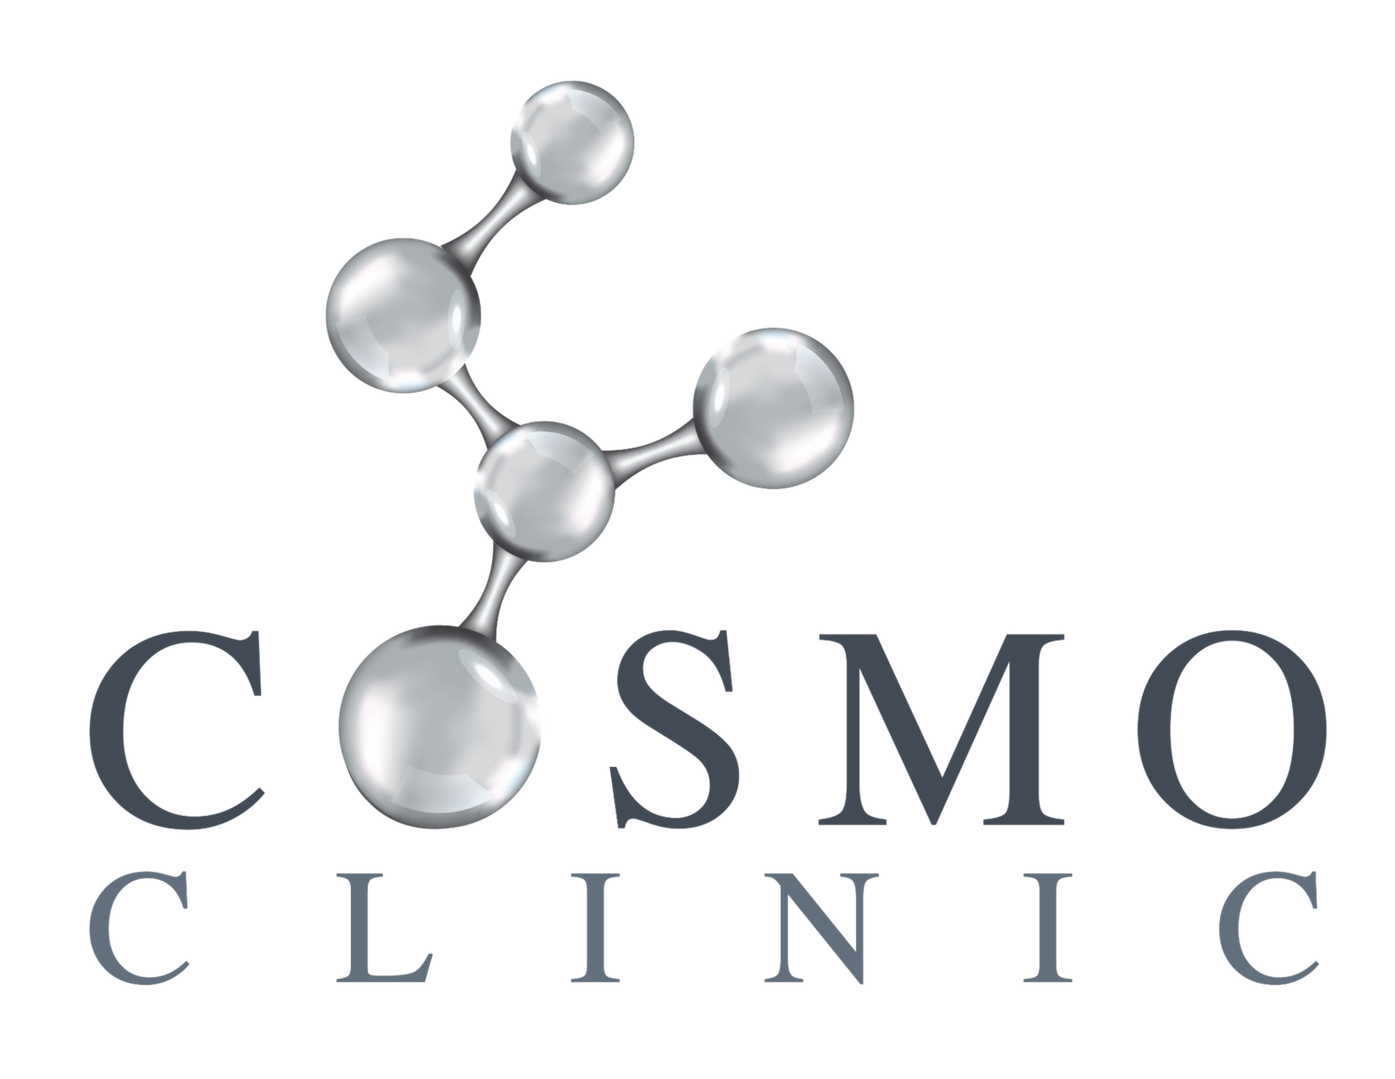 LOGO-Cosmoclinic-01%20(1)_edited.png